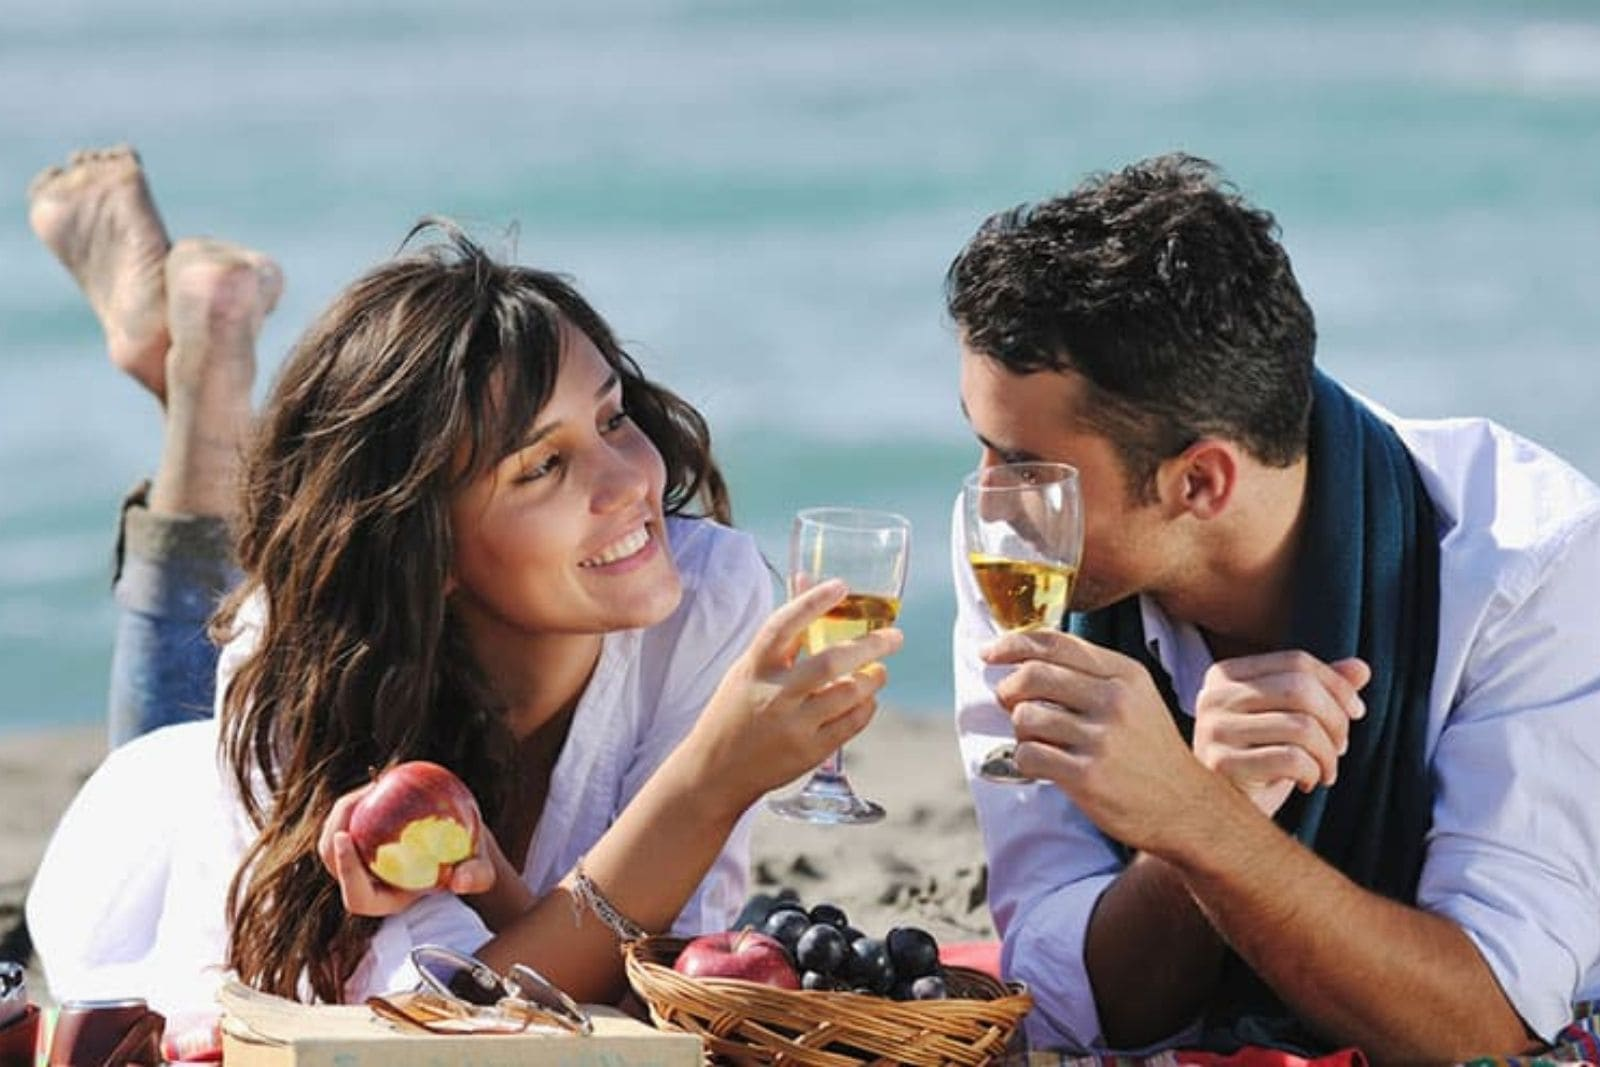 a man and a woman toast on the beach